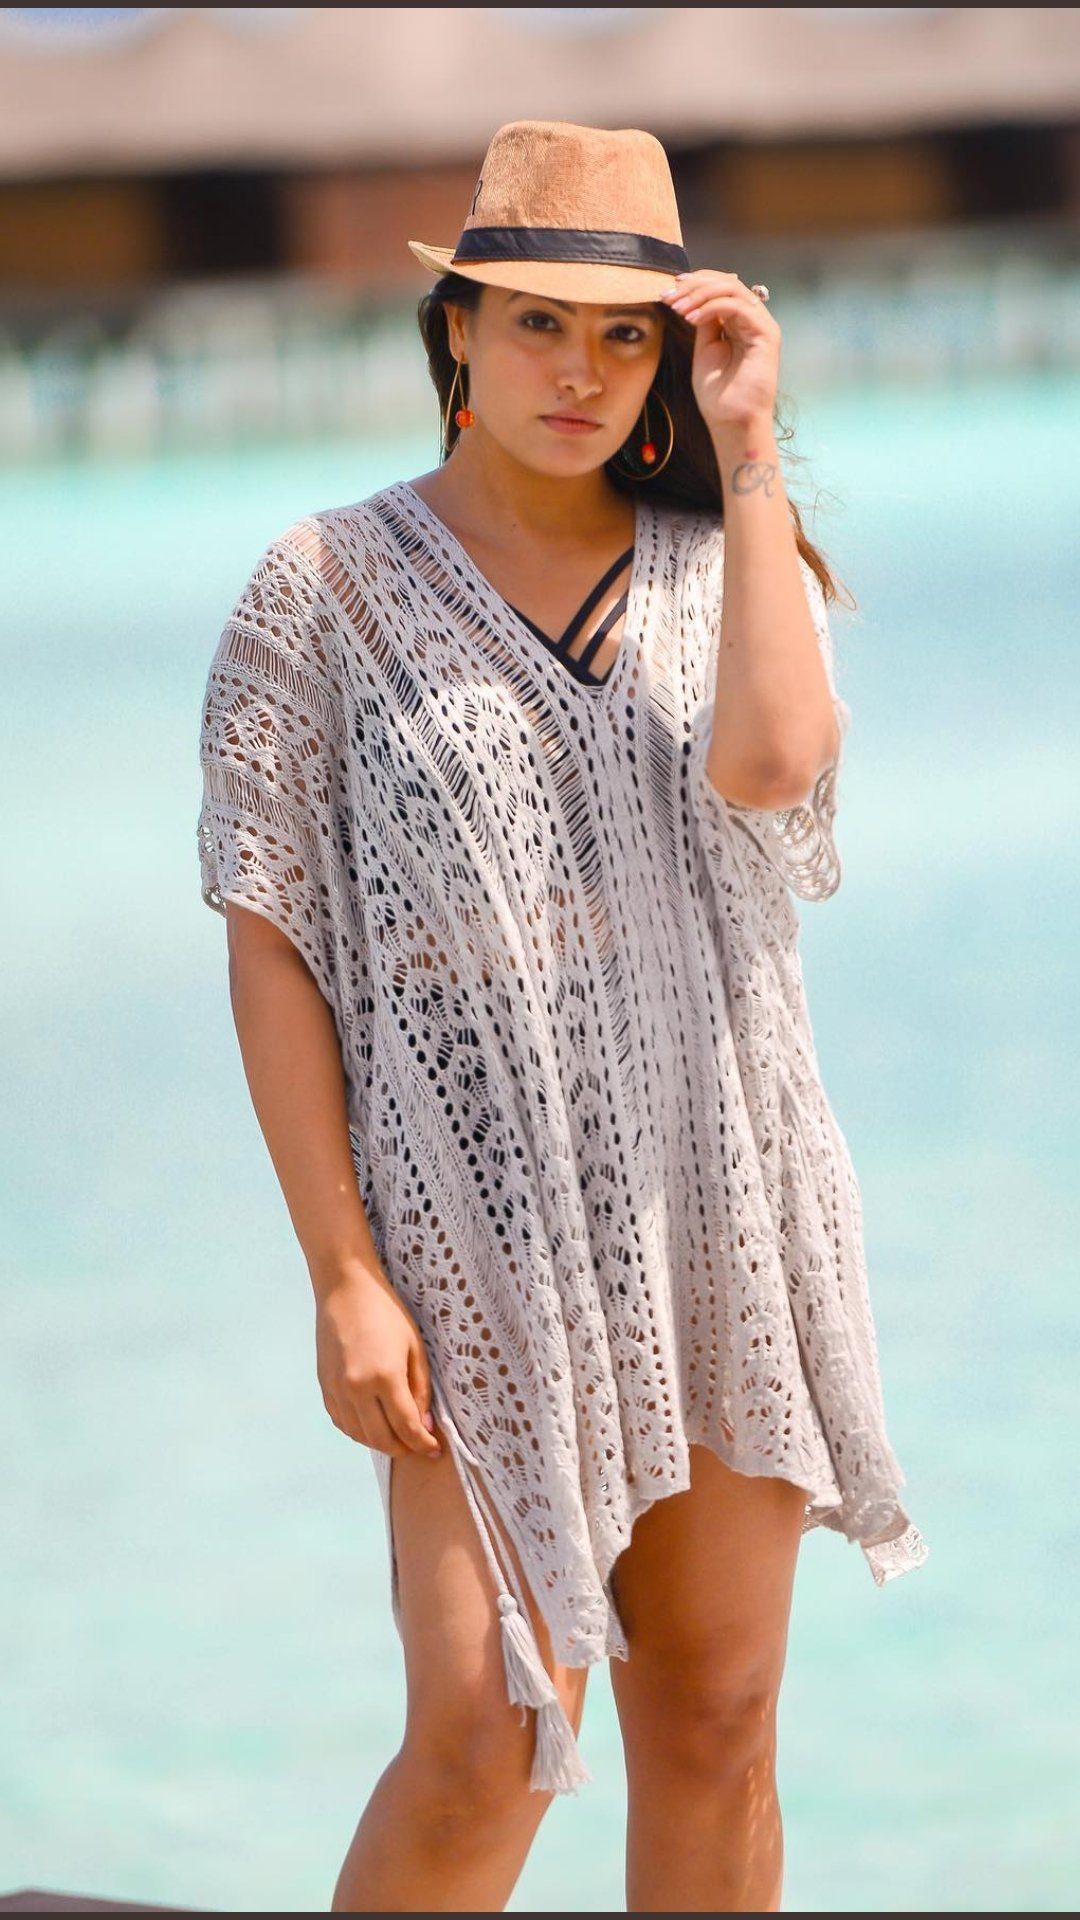 Actress Anitha Reddy Latest Photoshoot in Maldives